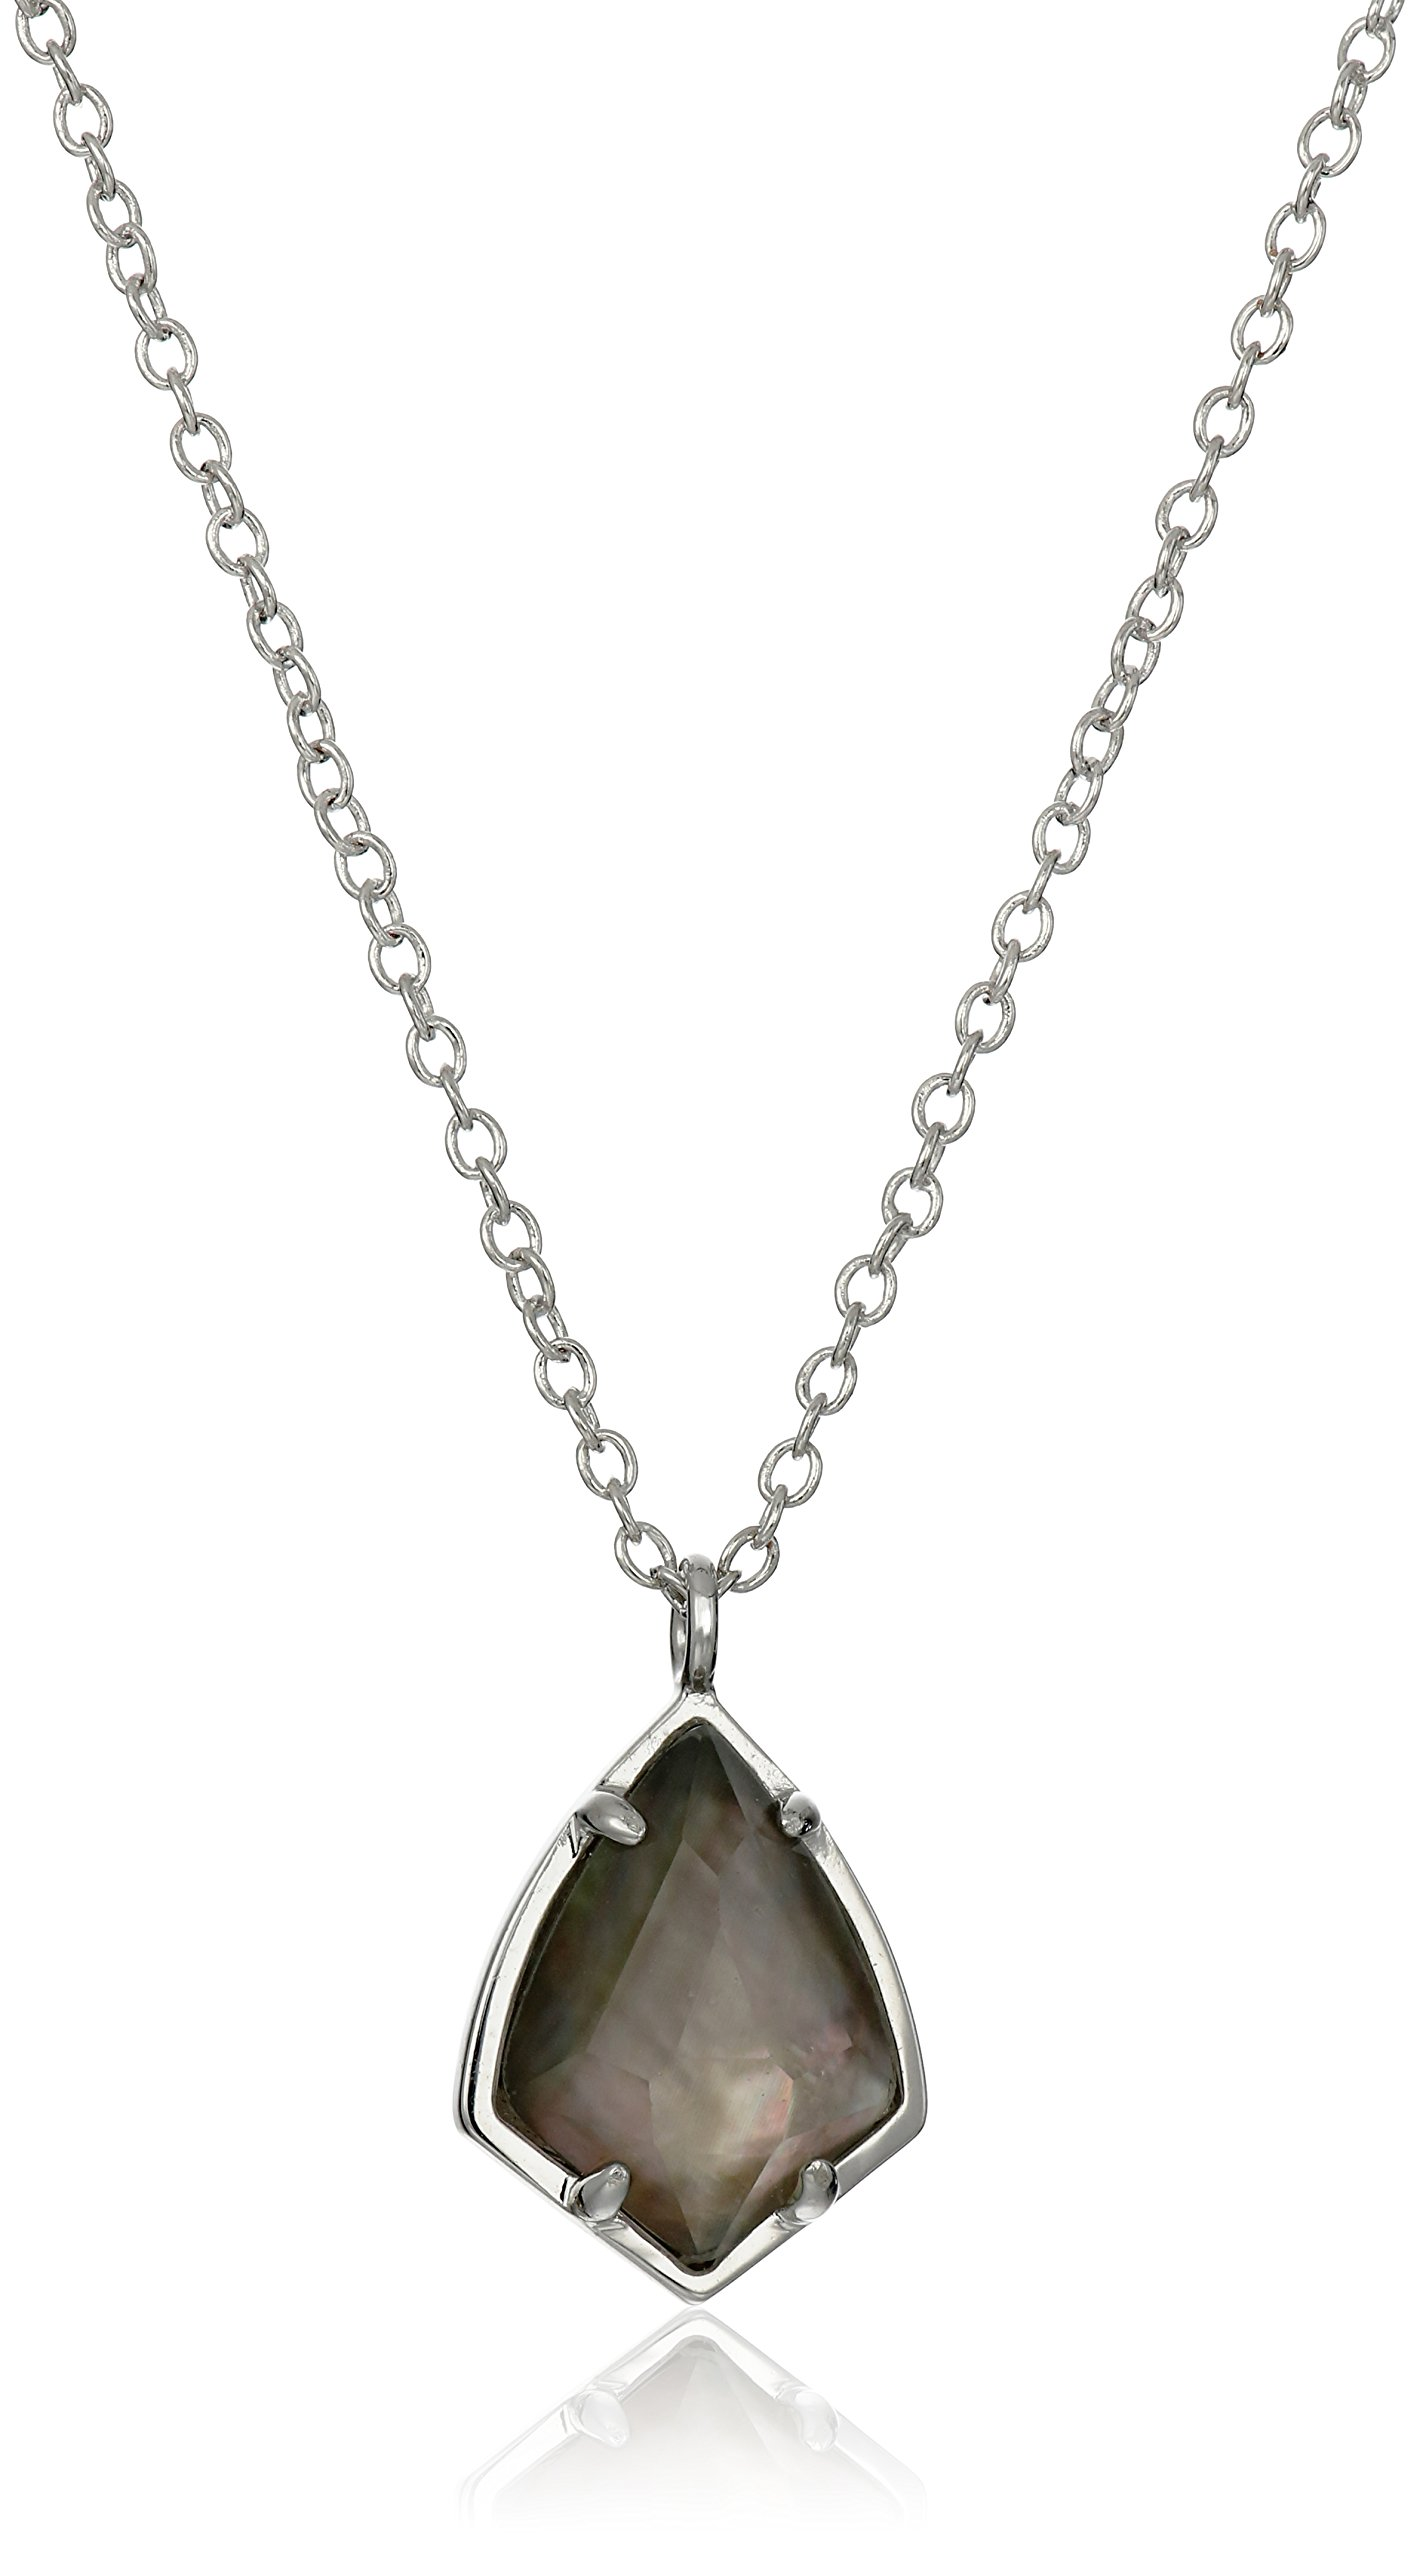 Kendra Scott Cory Rhodium Black Mother of Pearl Pendant Necklace, 18'' + 2'' Extender